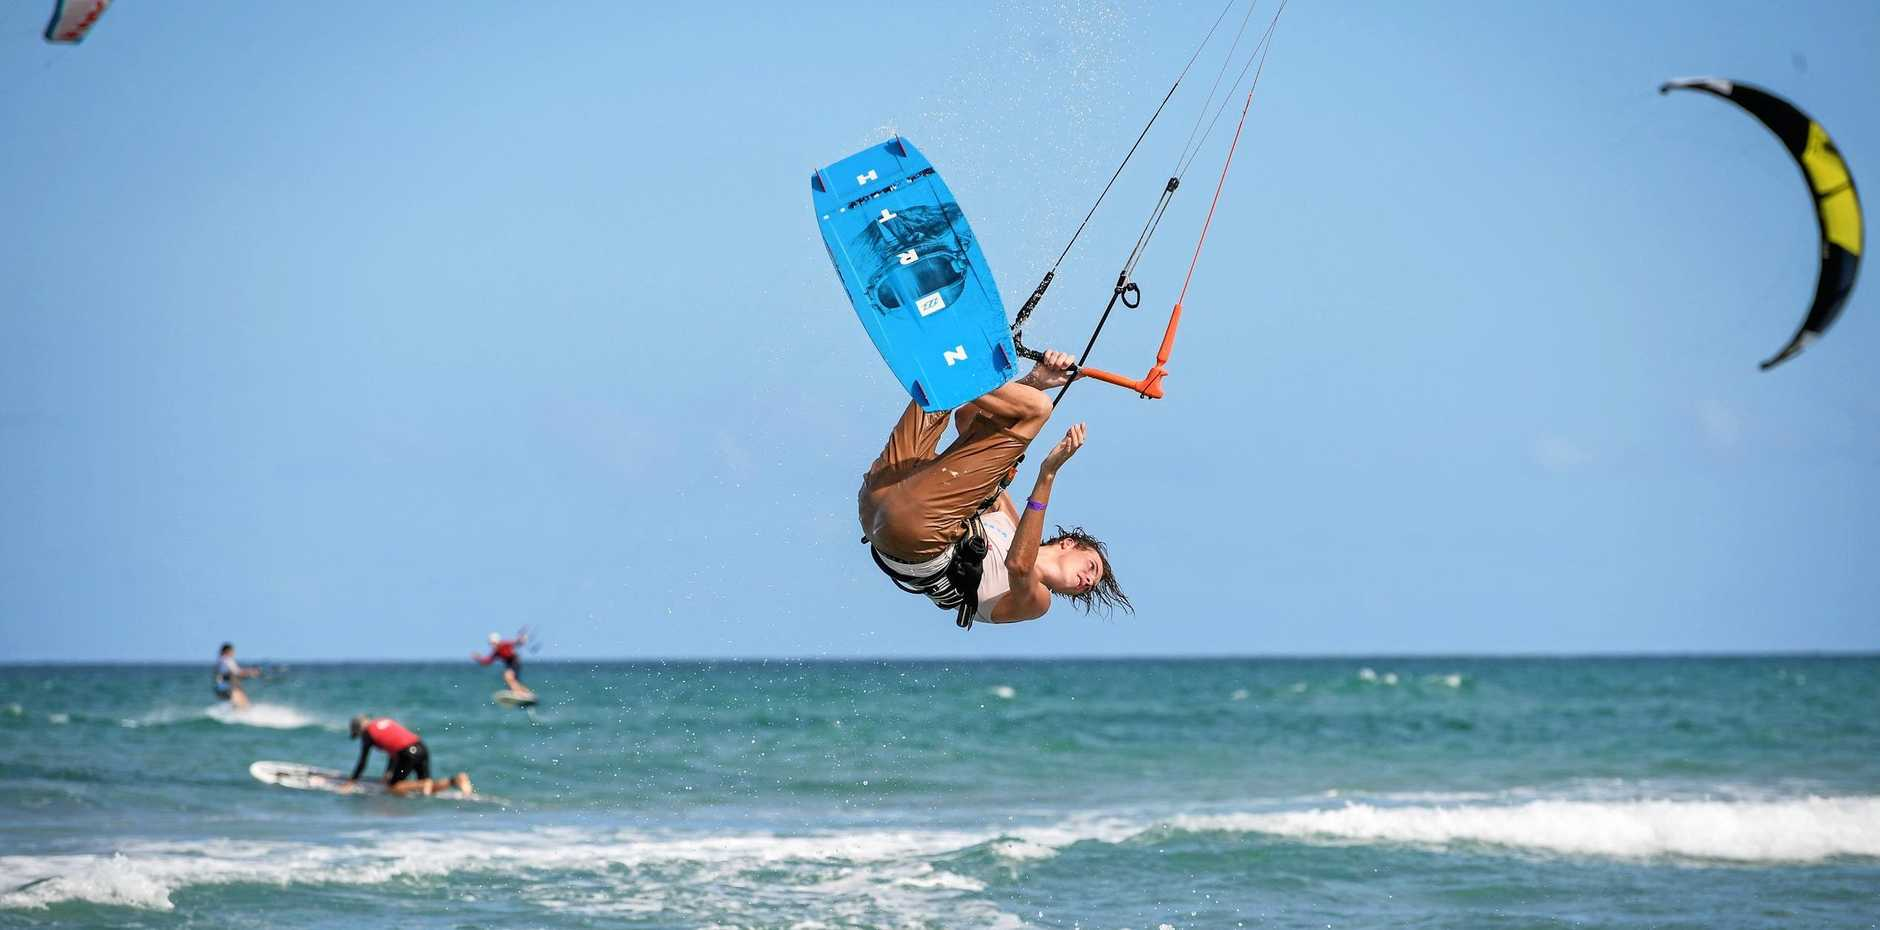 KITE HEIGHT: Sunshine Coast's Ryan Parsons was able to get some air time in the light conditions on Saturday.